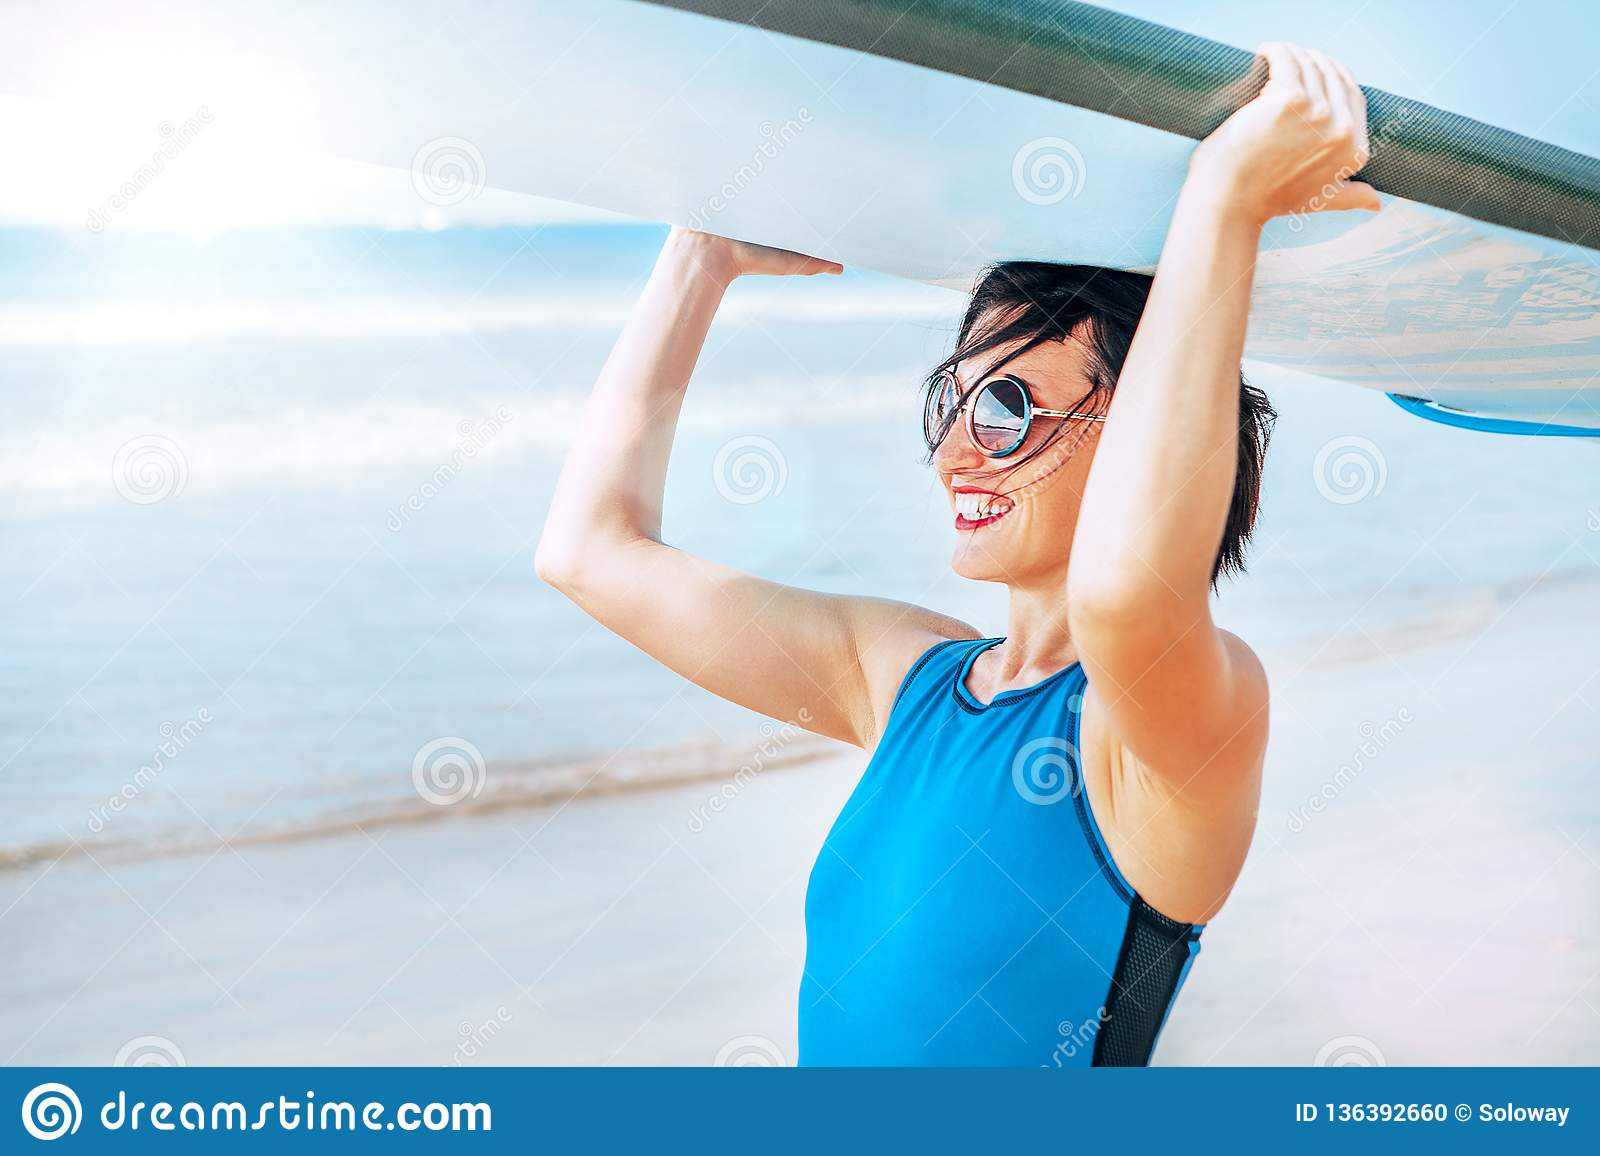 Surfer woman with longboard going into ocean waves. Active vacation concept image